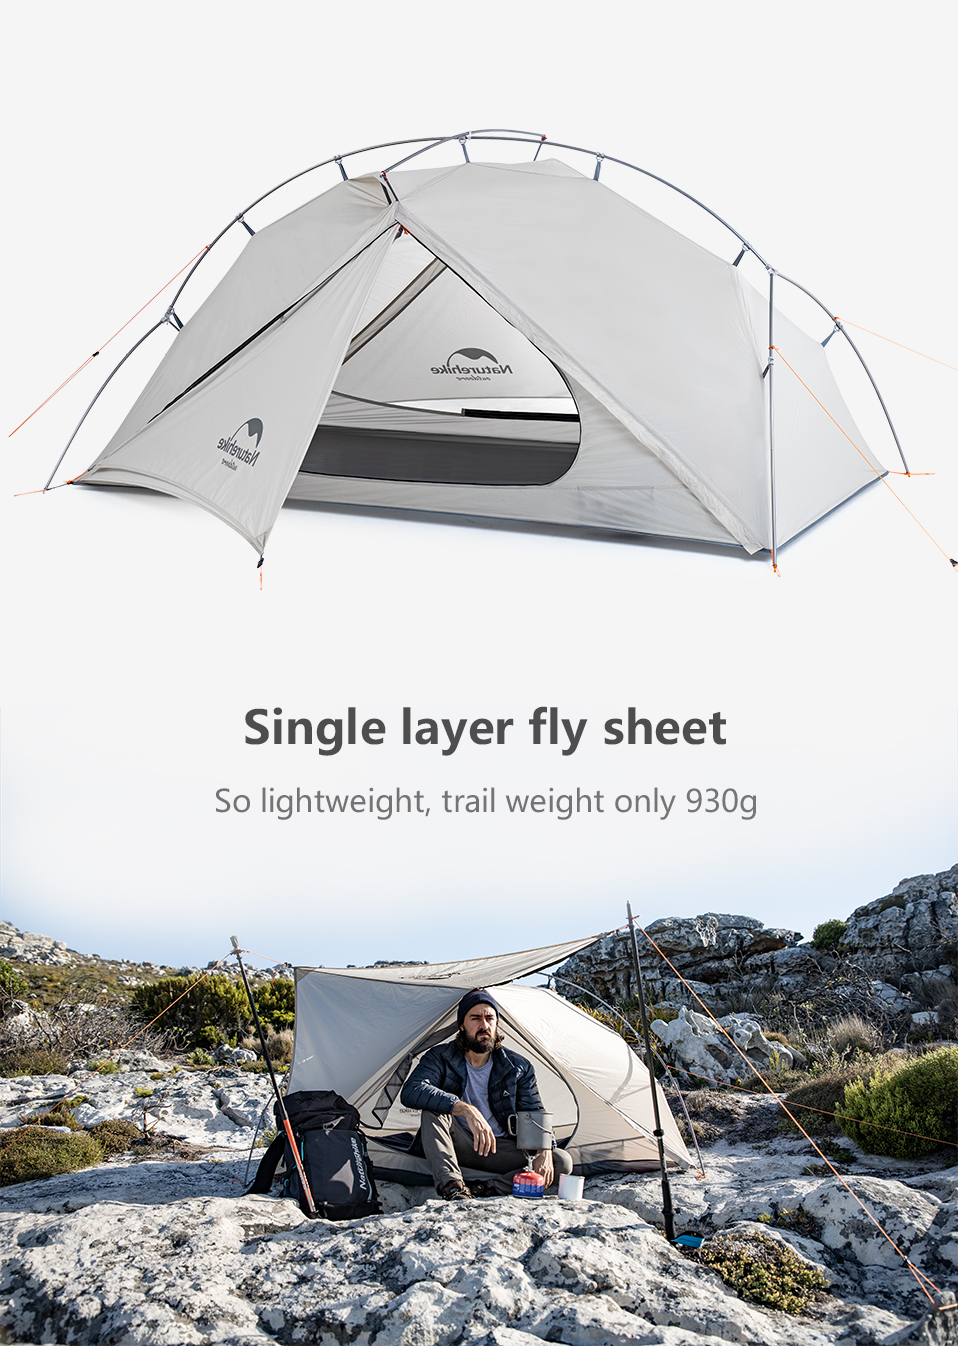 Naturehike VIK Serie Outdoor single tent ultra light 0.93kg 15D nylon camping hiking snow rainproof portable aluminum tent - 6